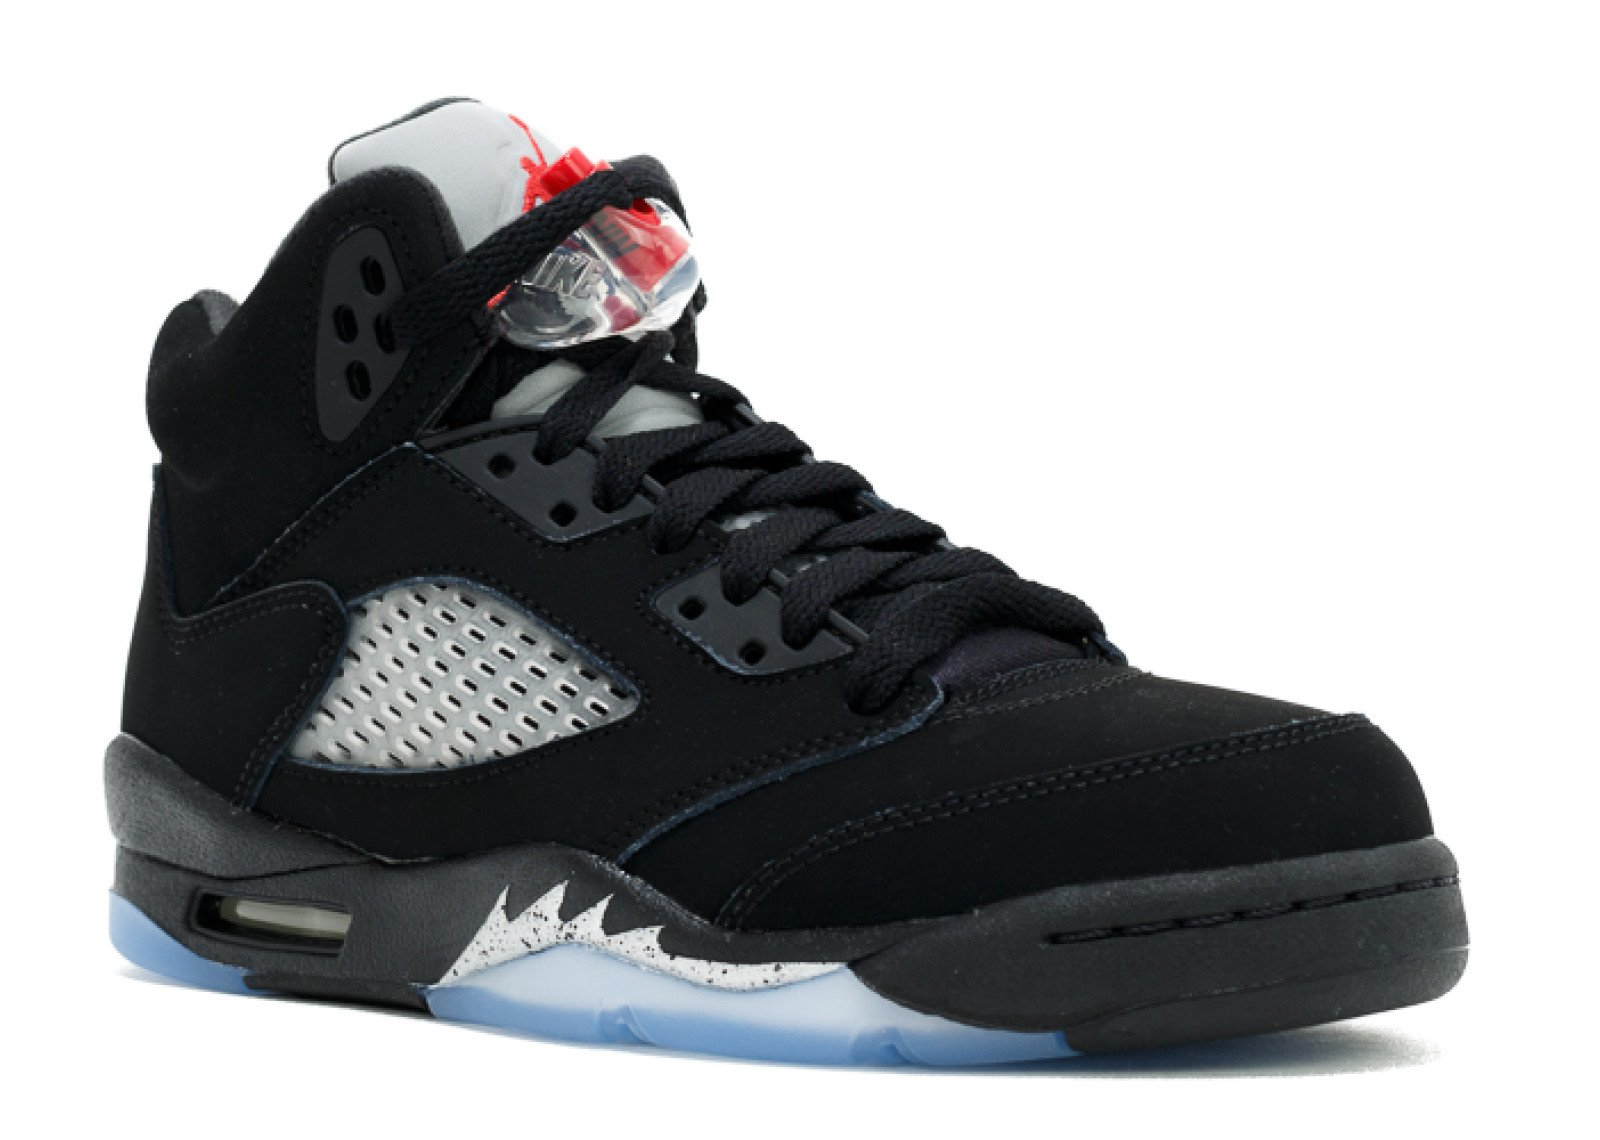 quality products los angeles great fit Jordan 5 Retro Big Kids Style, Black/Fire Red/Metallic Silver ...